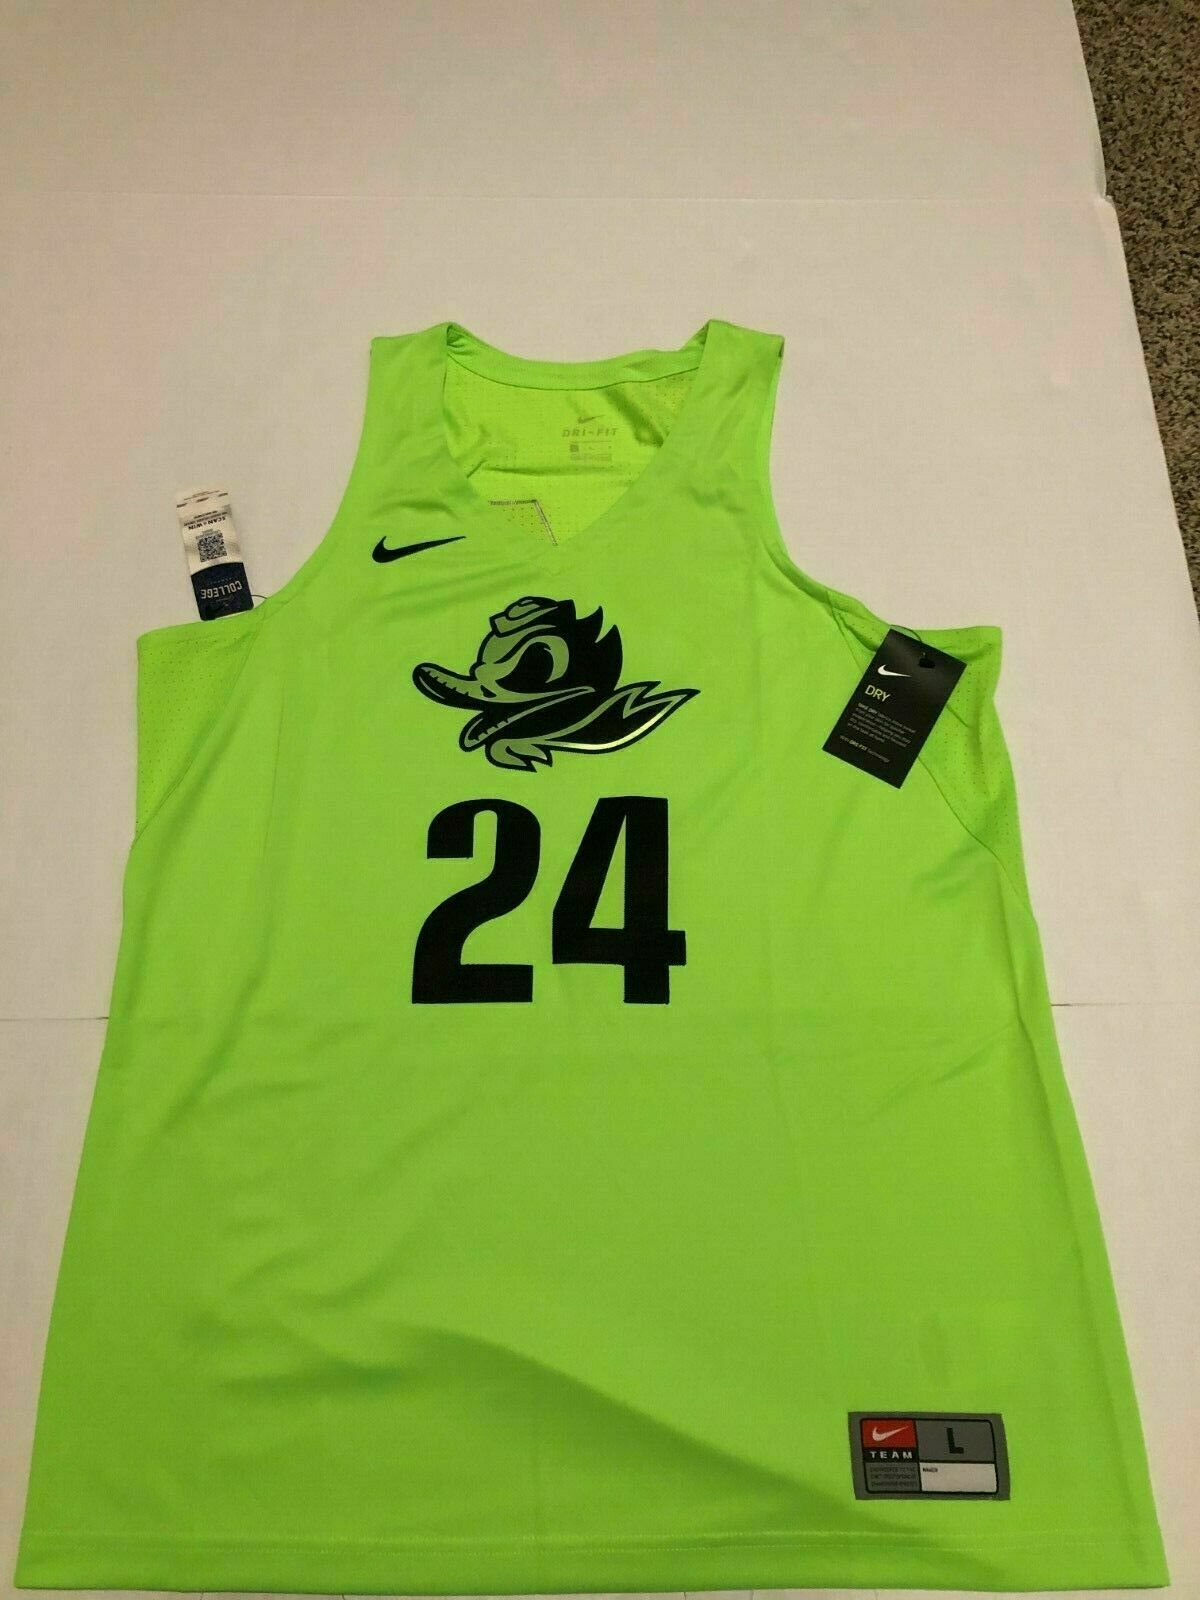 big sale 9fe5c 2bc3c Nike Oregon Ducks Basketball Jersey Stitched #24 Authentic Fighting Duck Sz  L